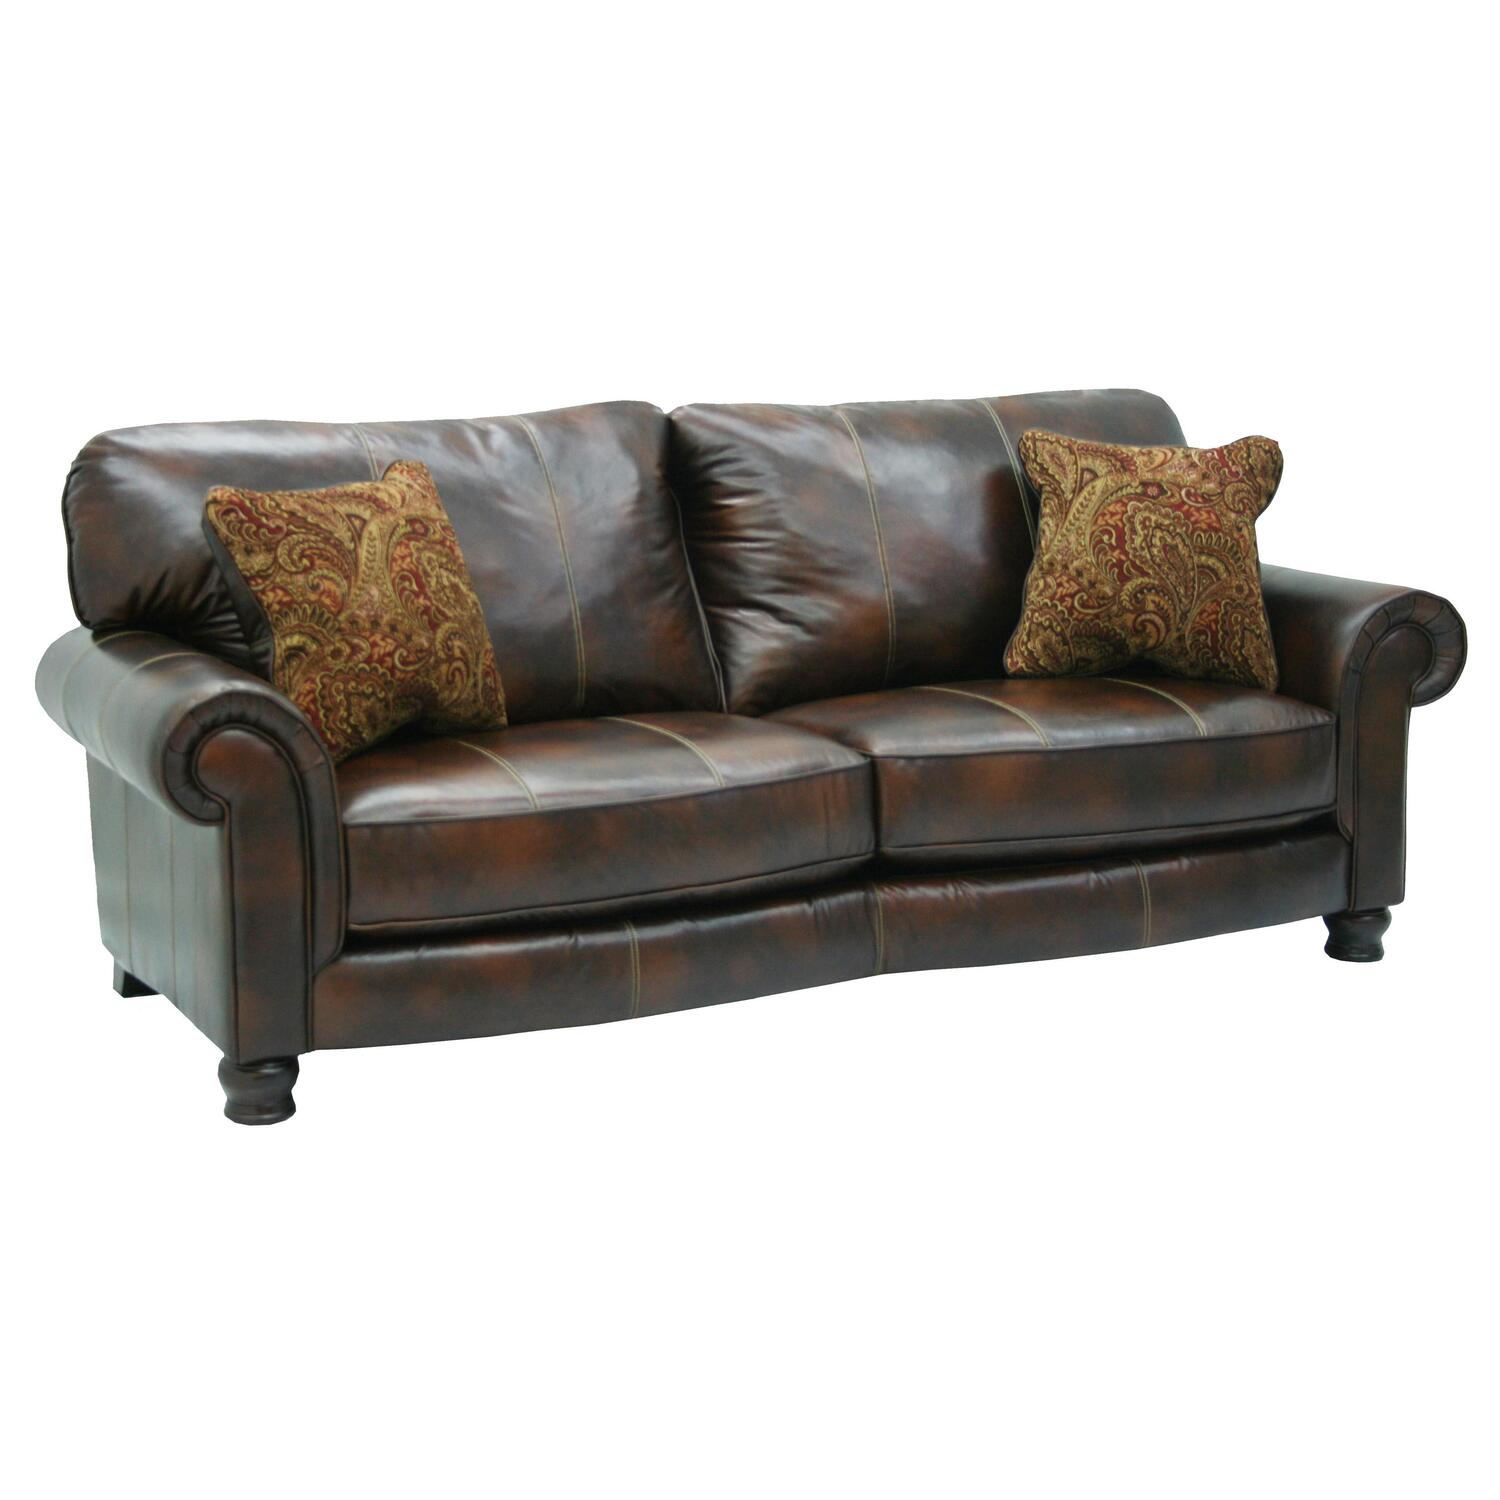 Oxford Sofa 689 00 Ojcommerce